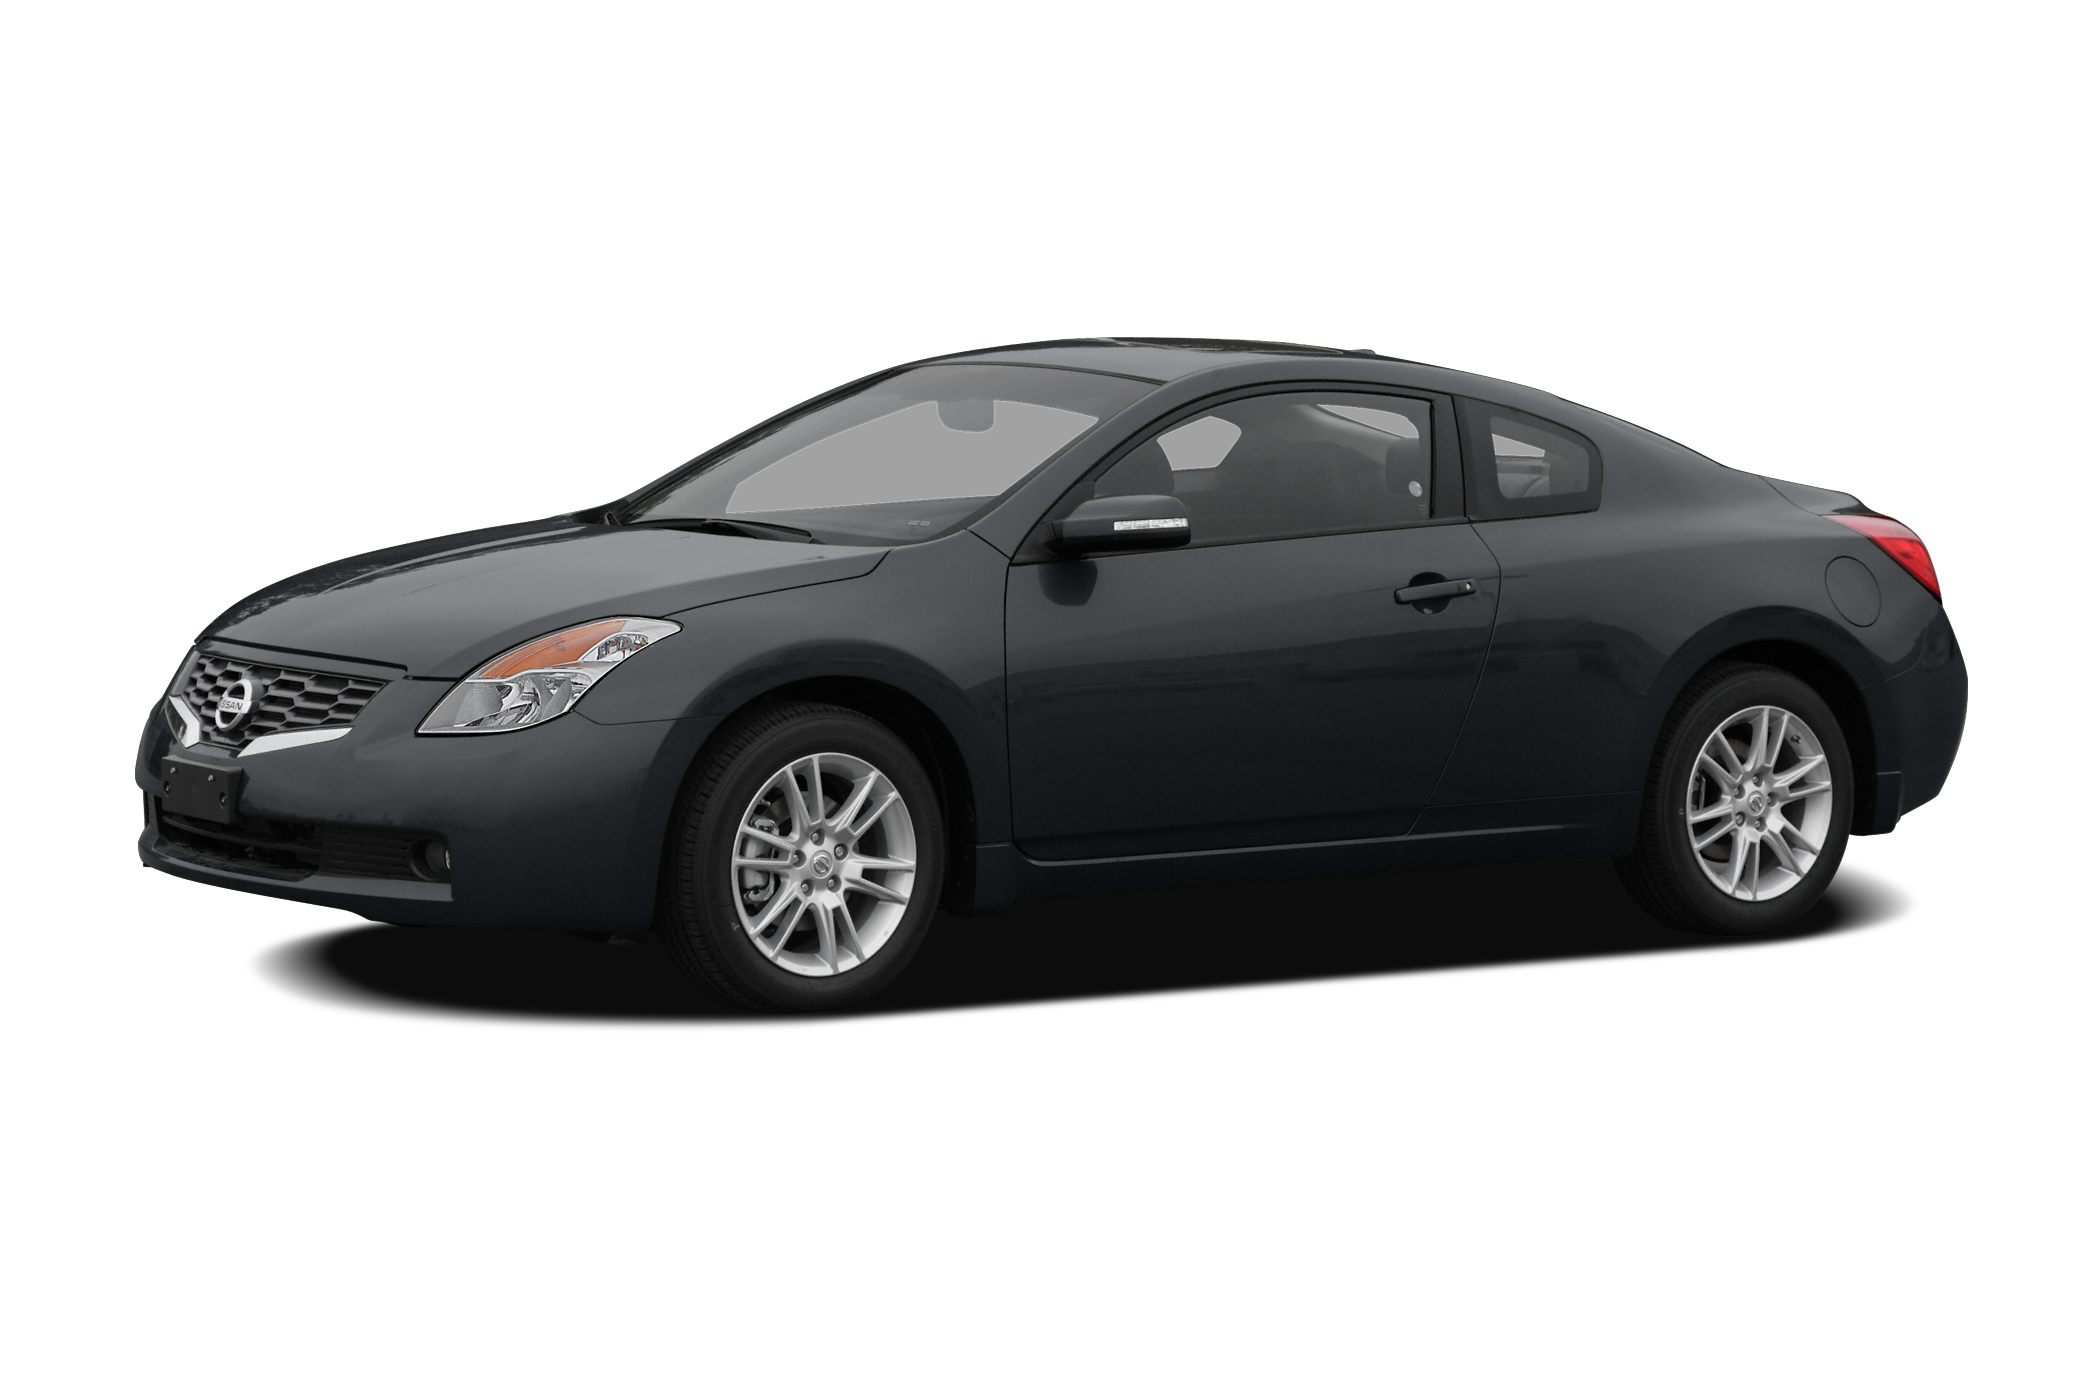 81 New Nissan Altima Coupe 2008 Style by Nissan Altima Coupe 2008